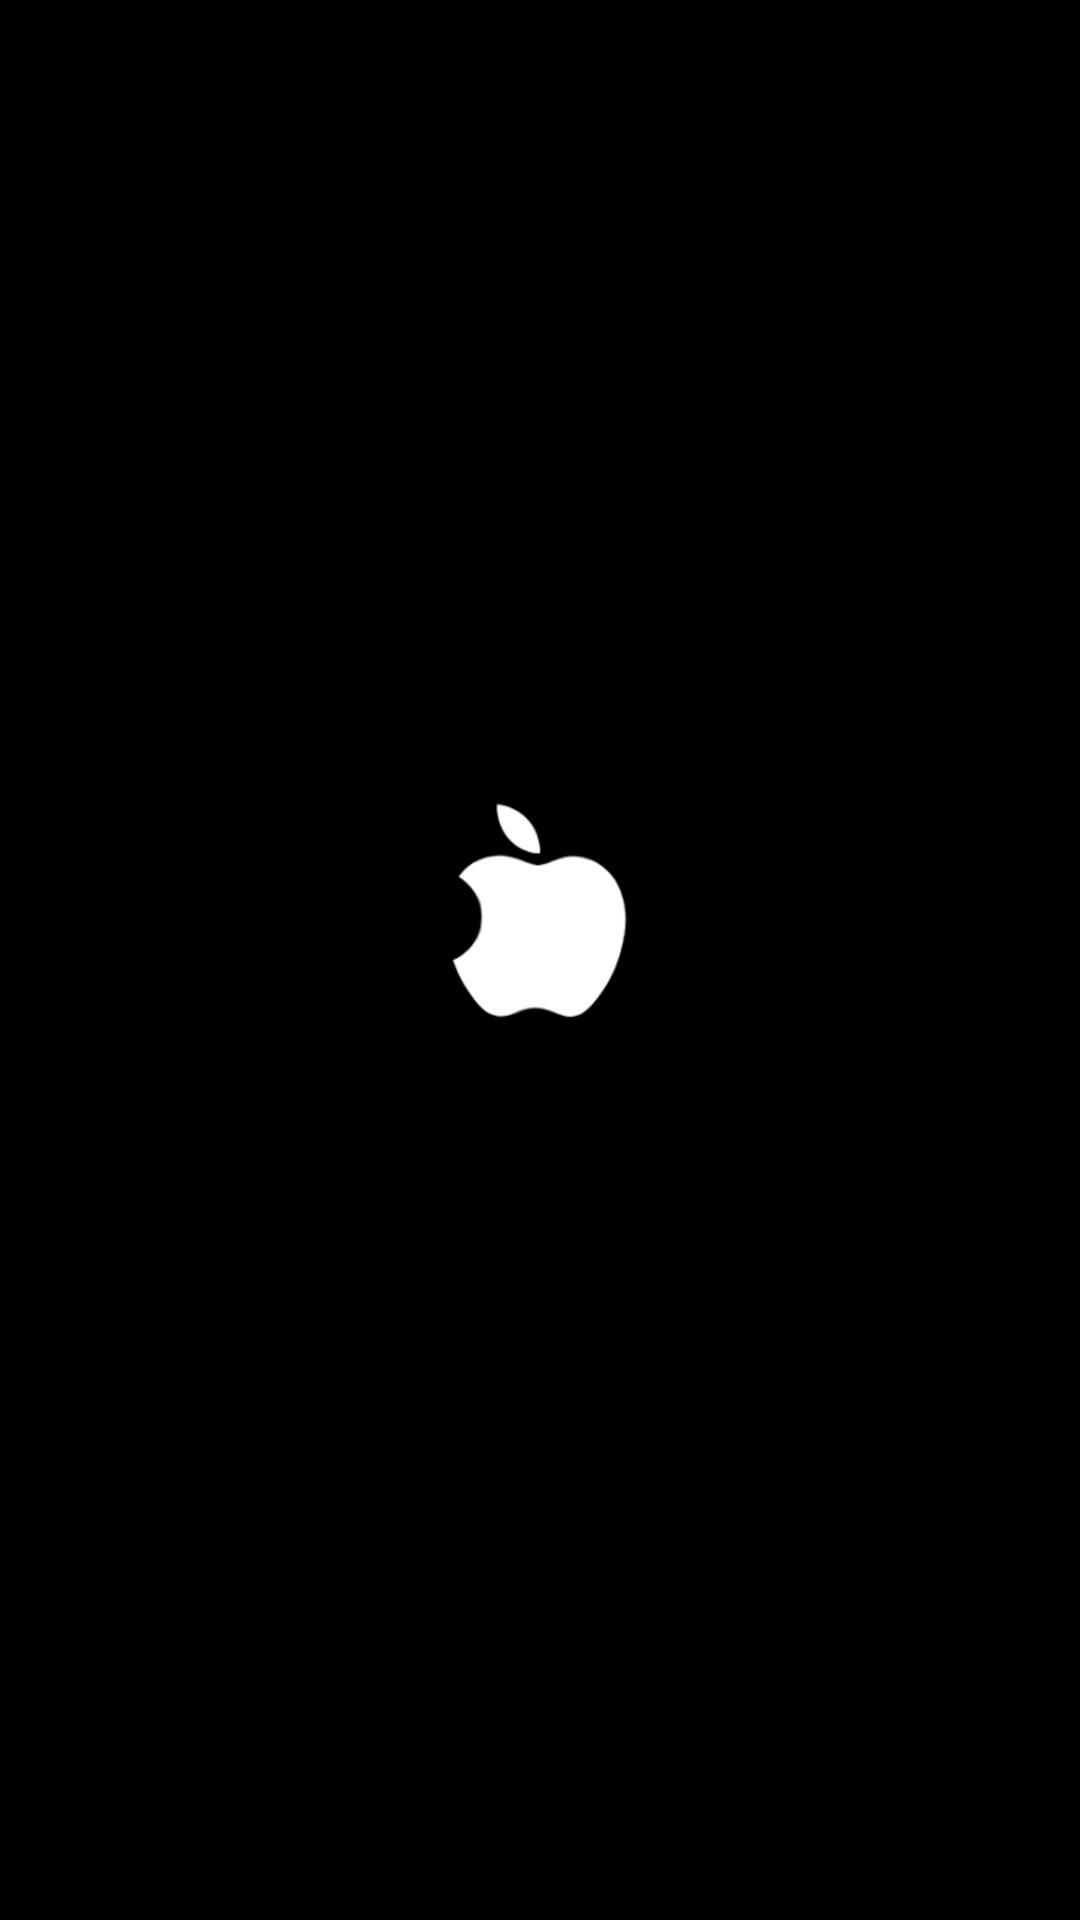 Wallpaper Black Apple For Iphone 7 Iphonewallpapers